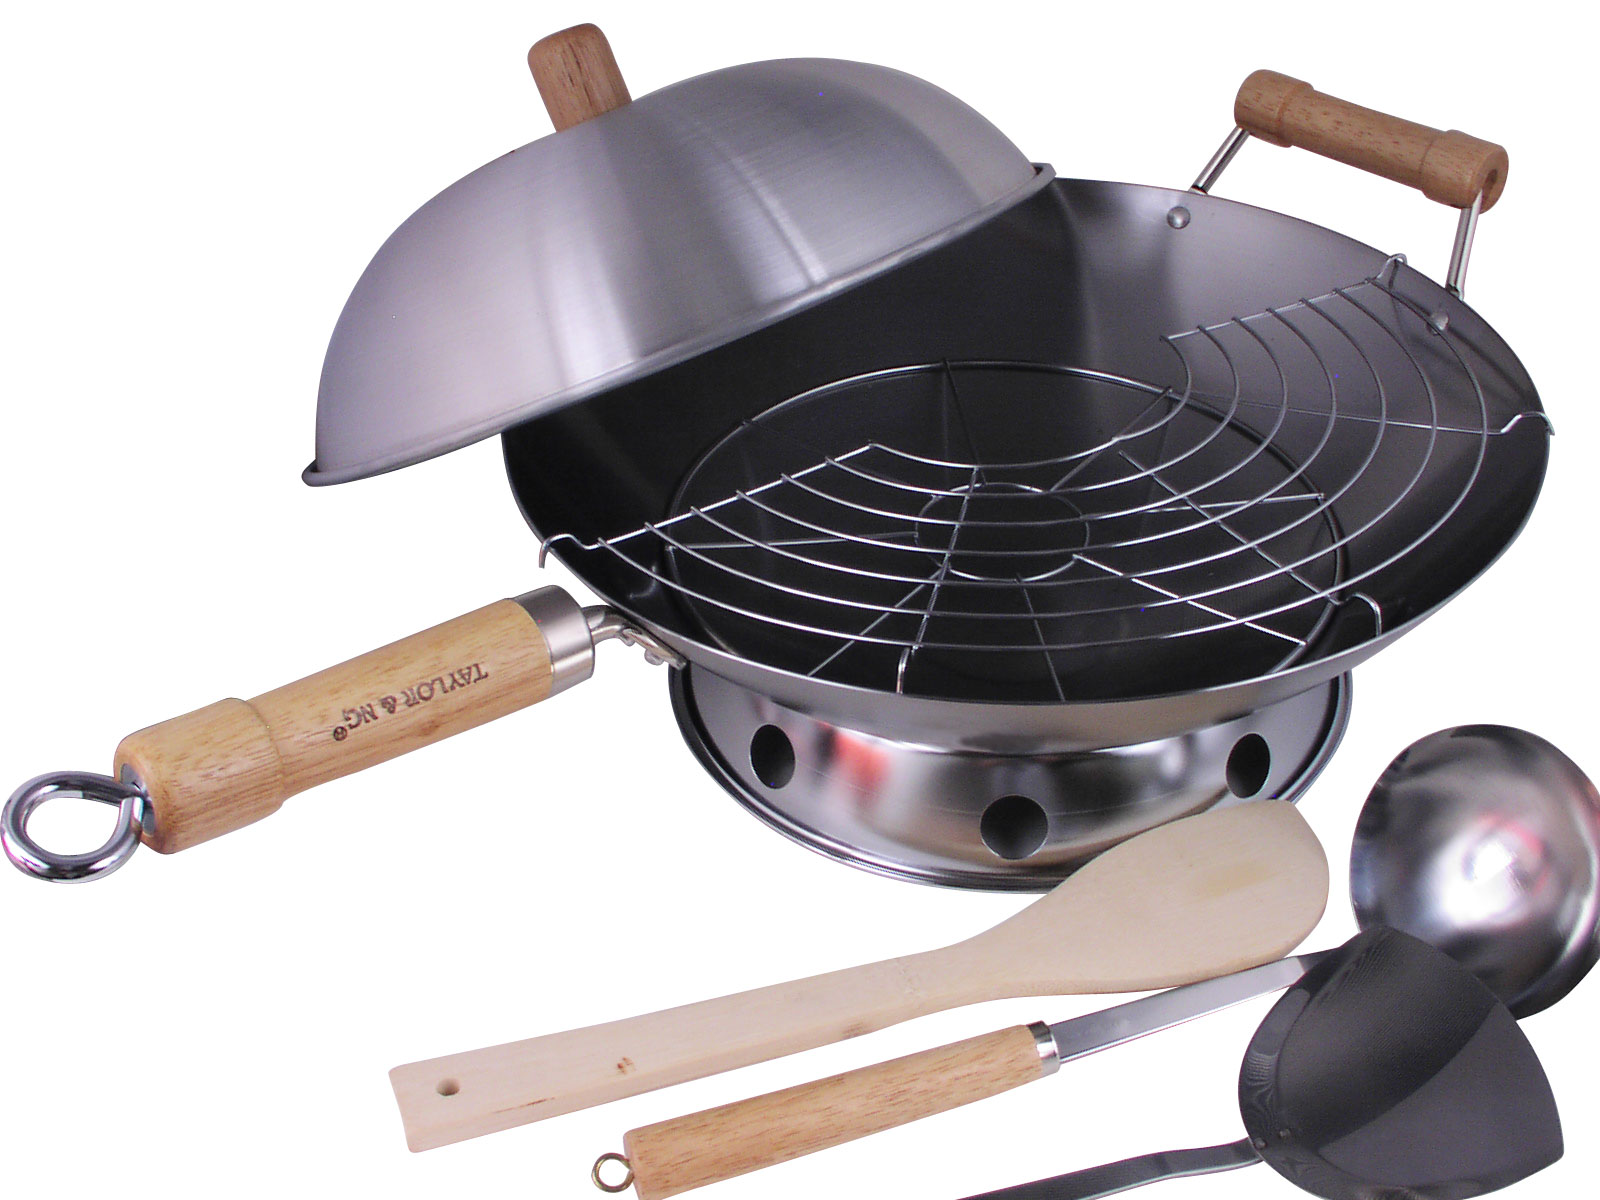 All In One Asian Kitchen Must Have Complete Round Bottom Wok Set